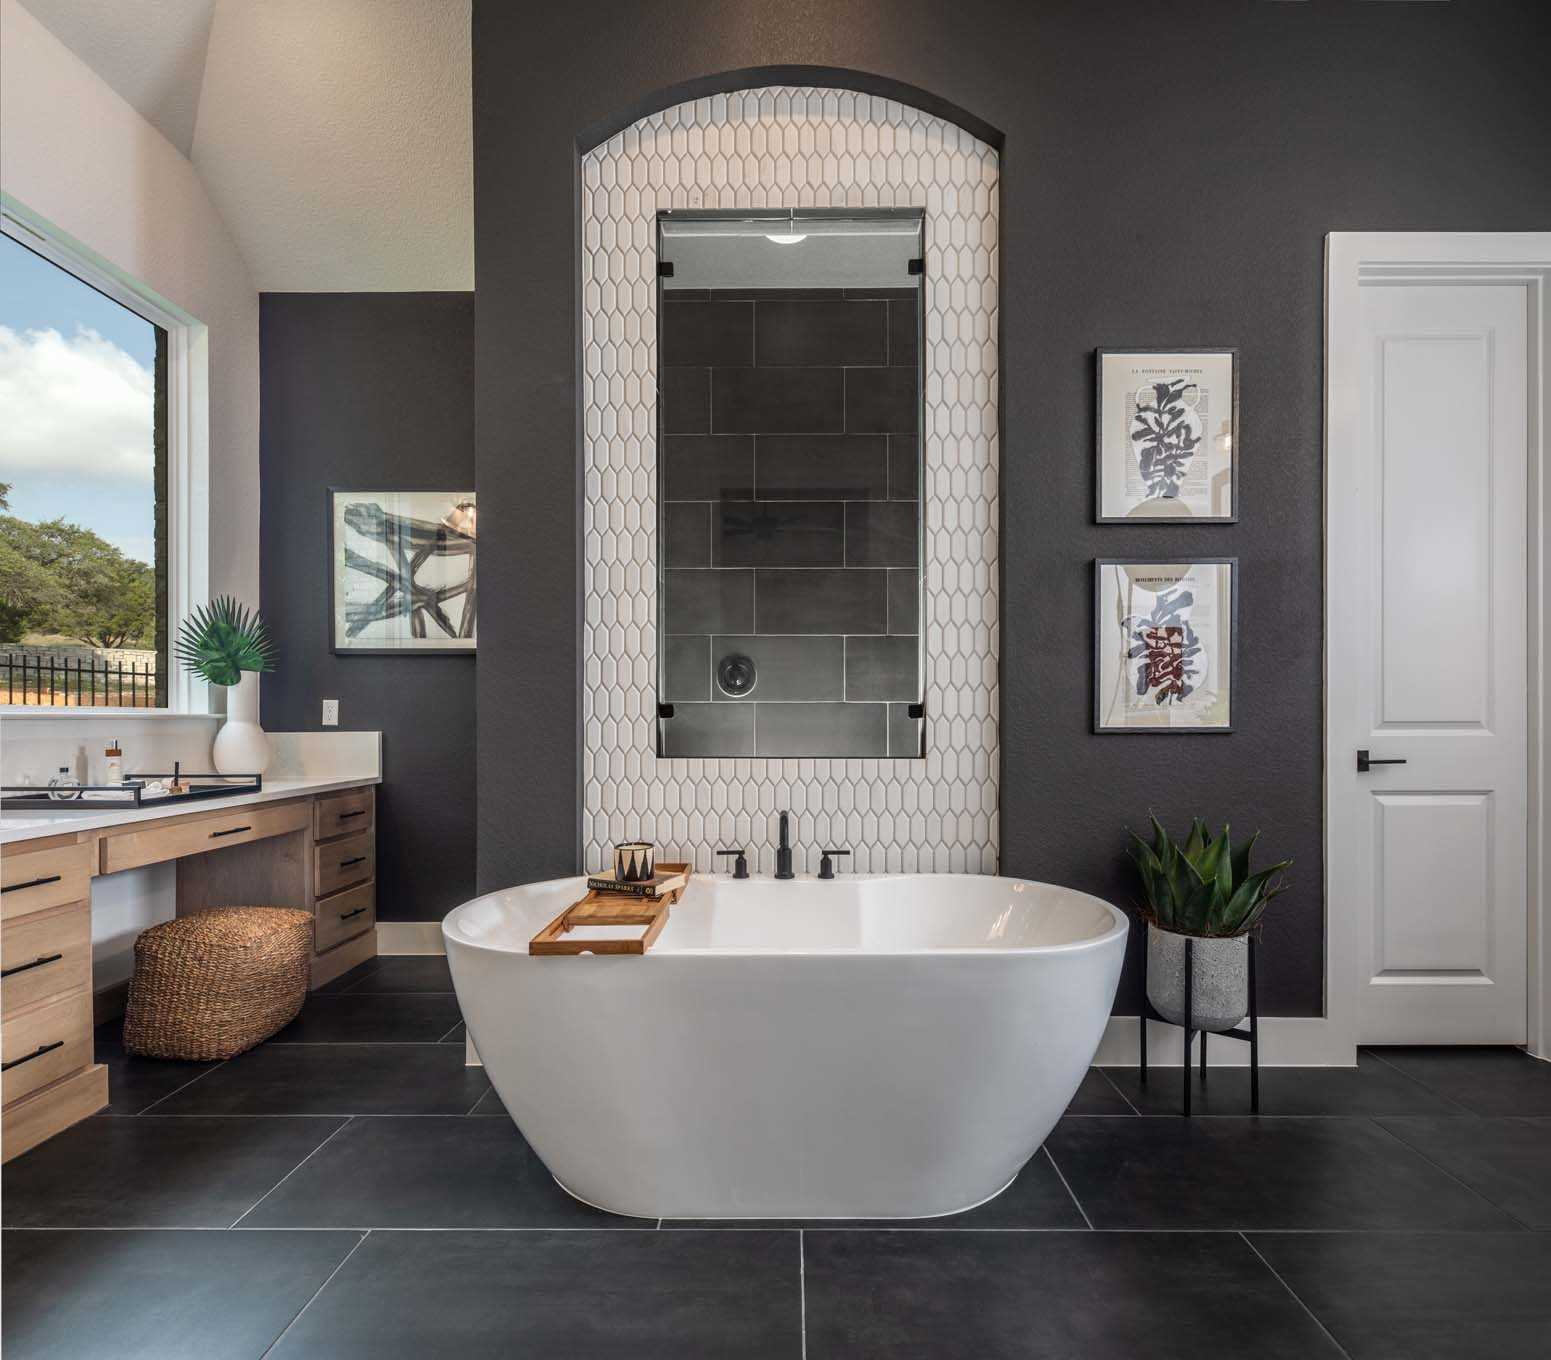 Bathroom featured in the Plan 215 By Highland Homes in Houston, TX